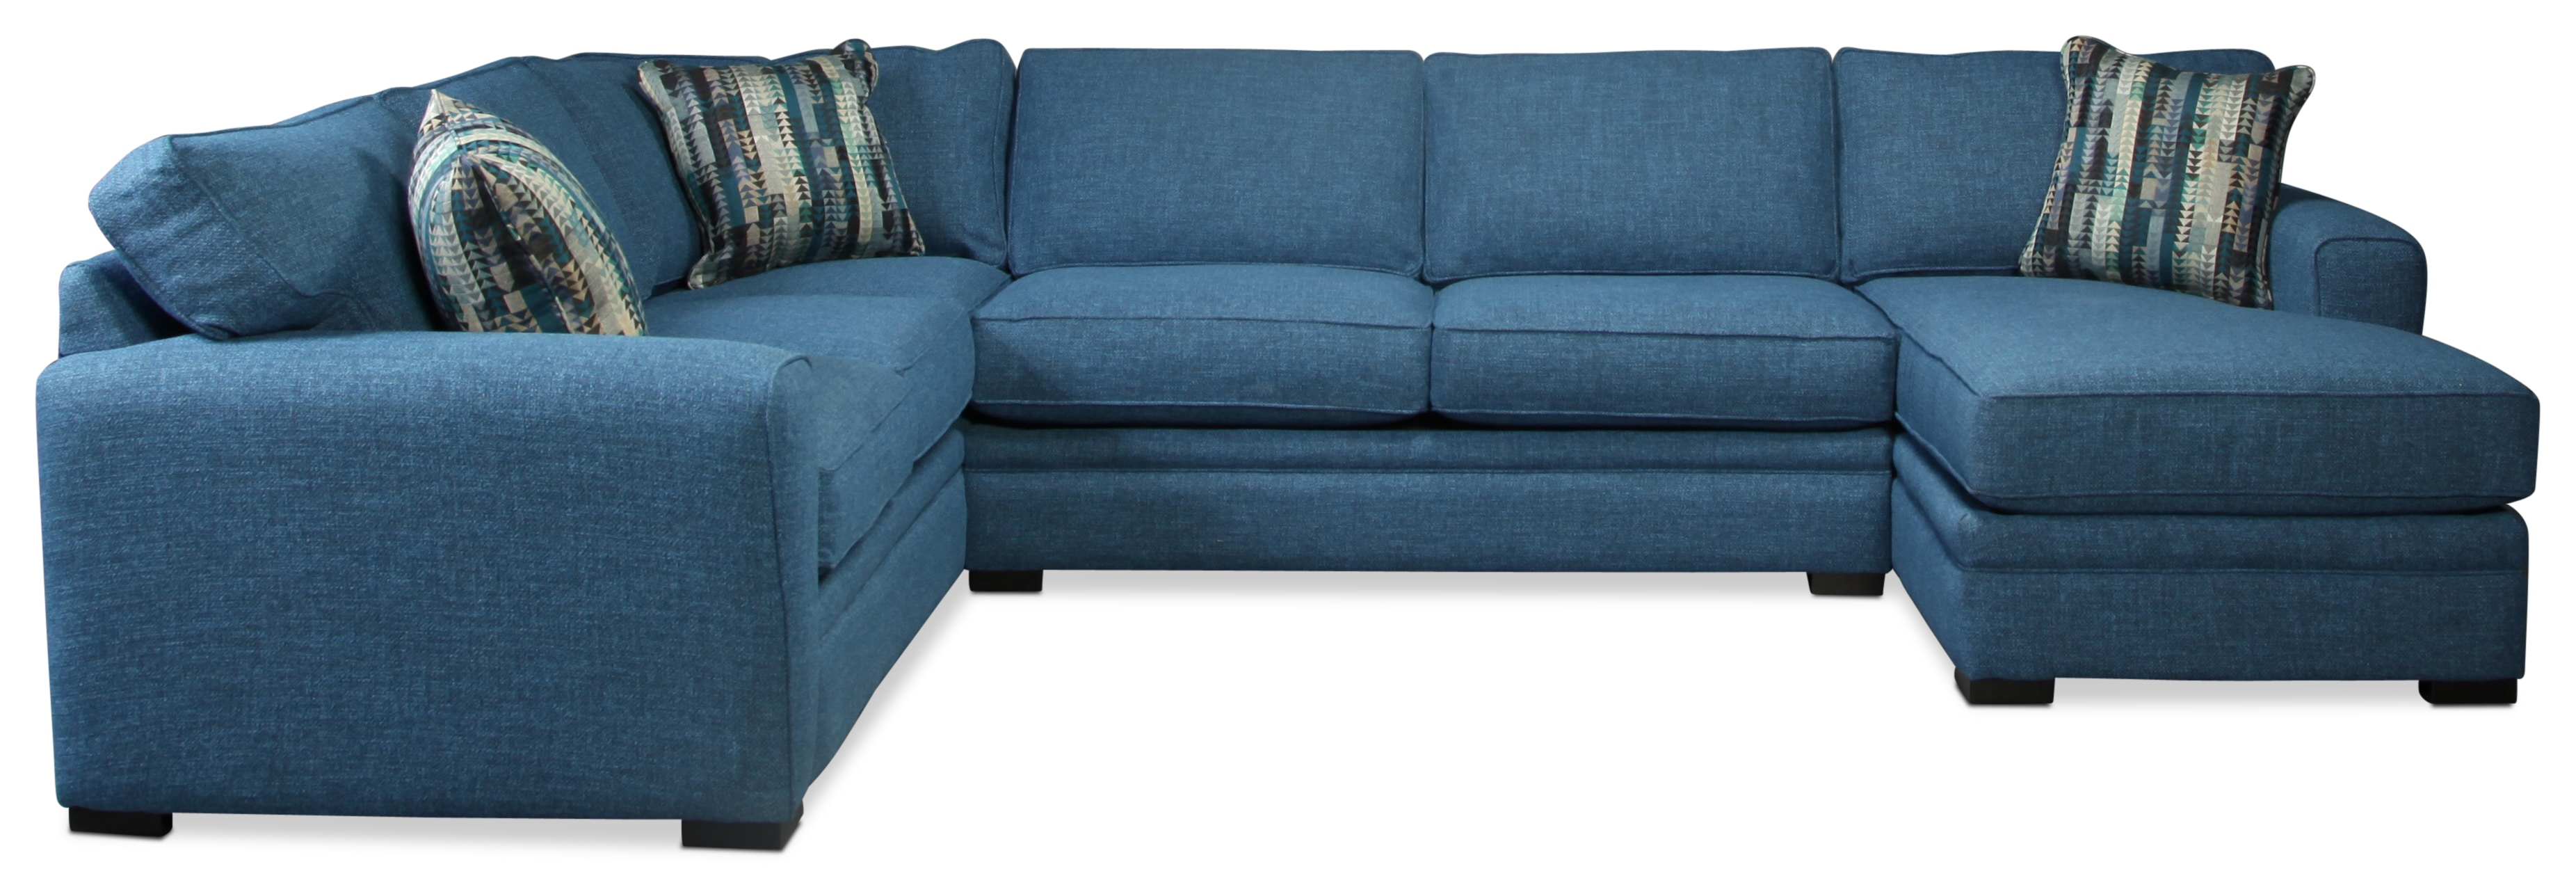 Lybrook 3 piece sectional levin furniture for Levin furniture sectional sofa